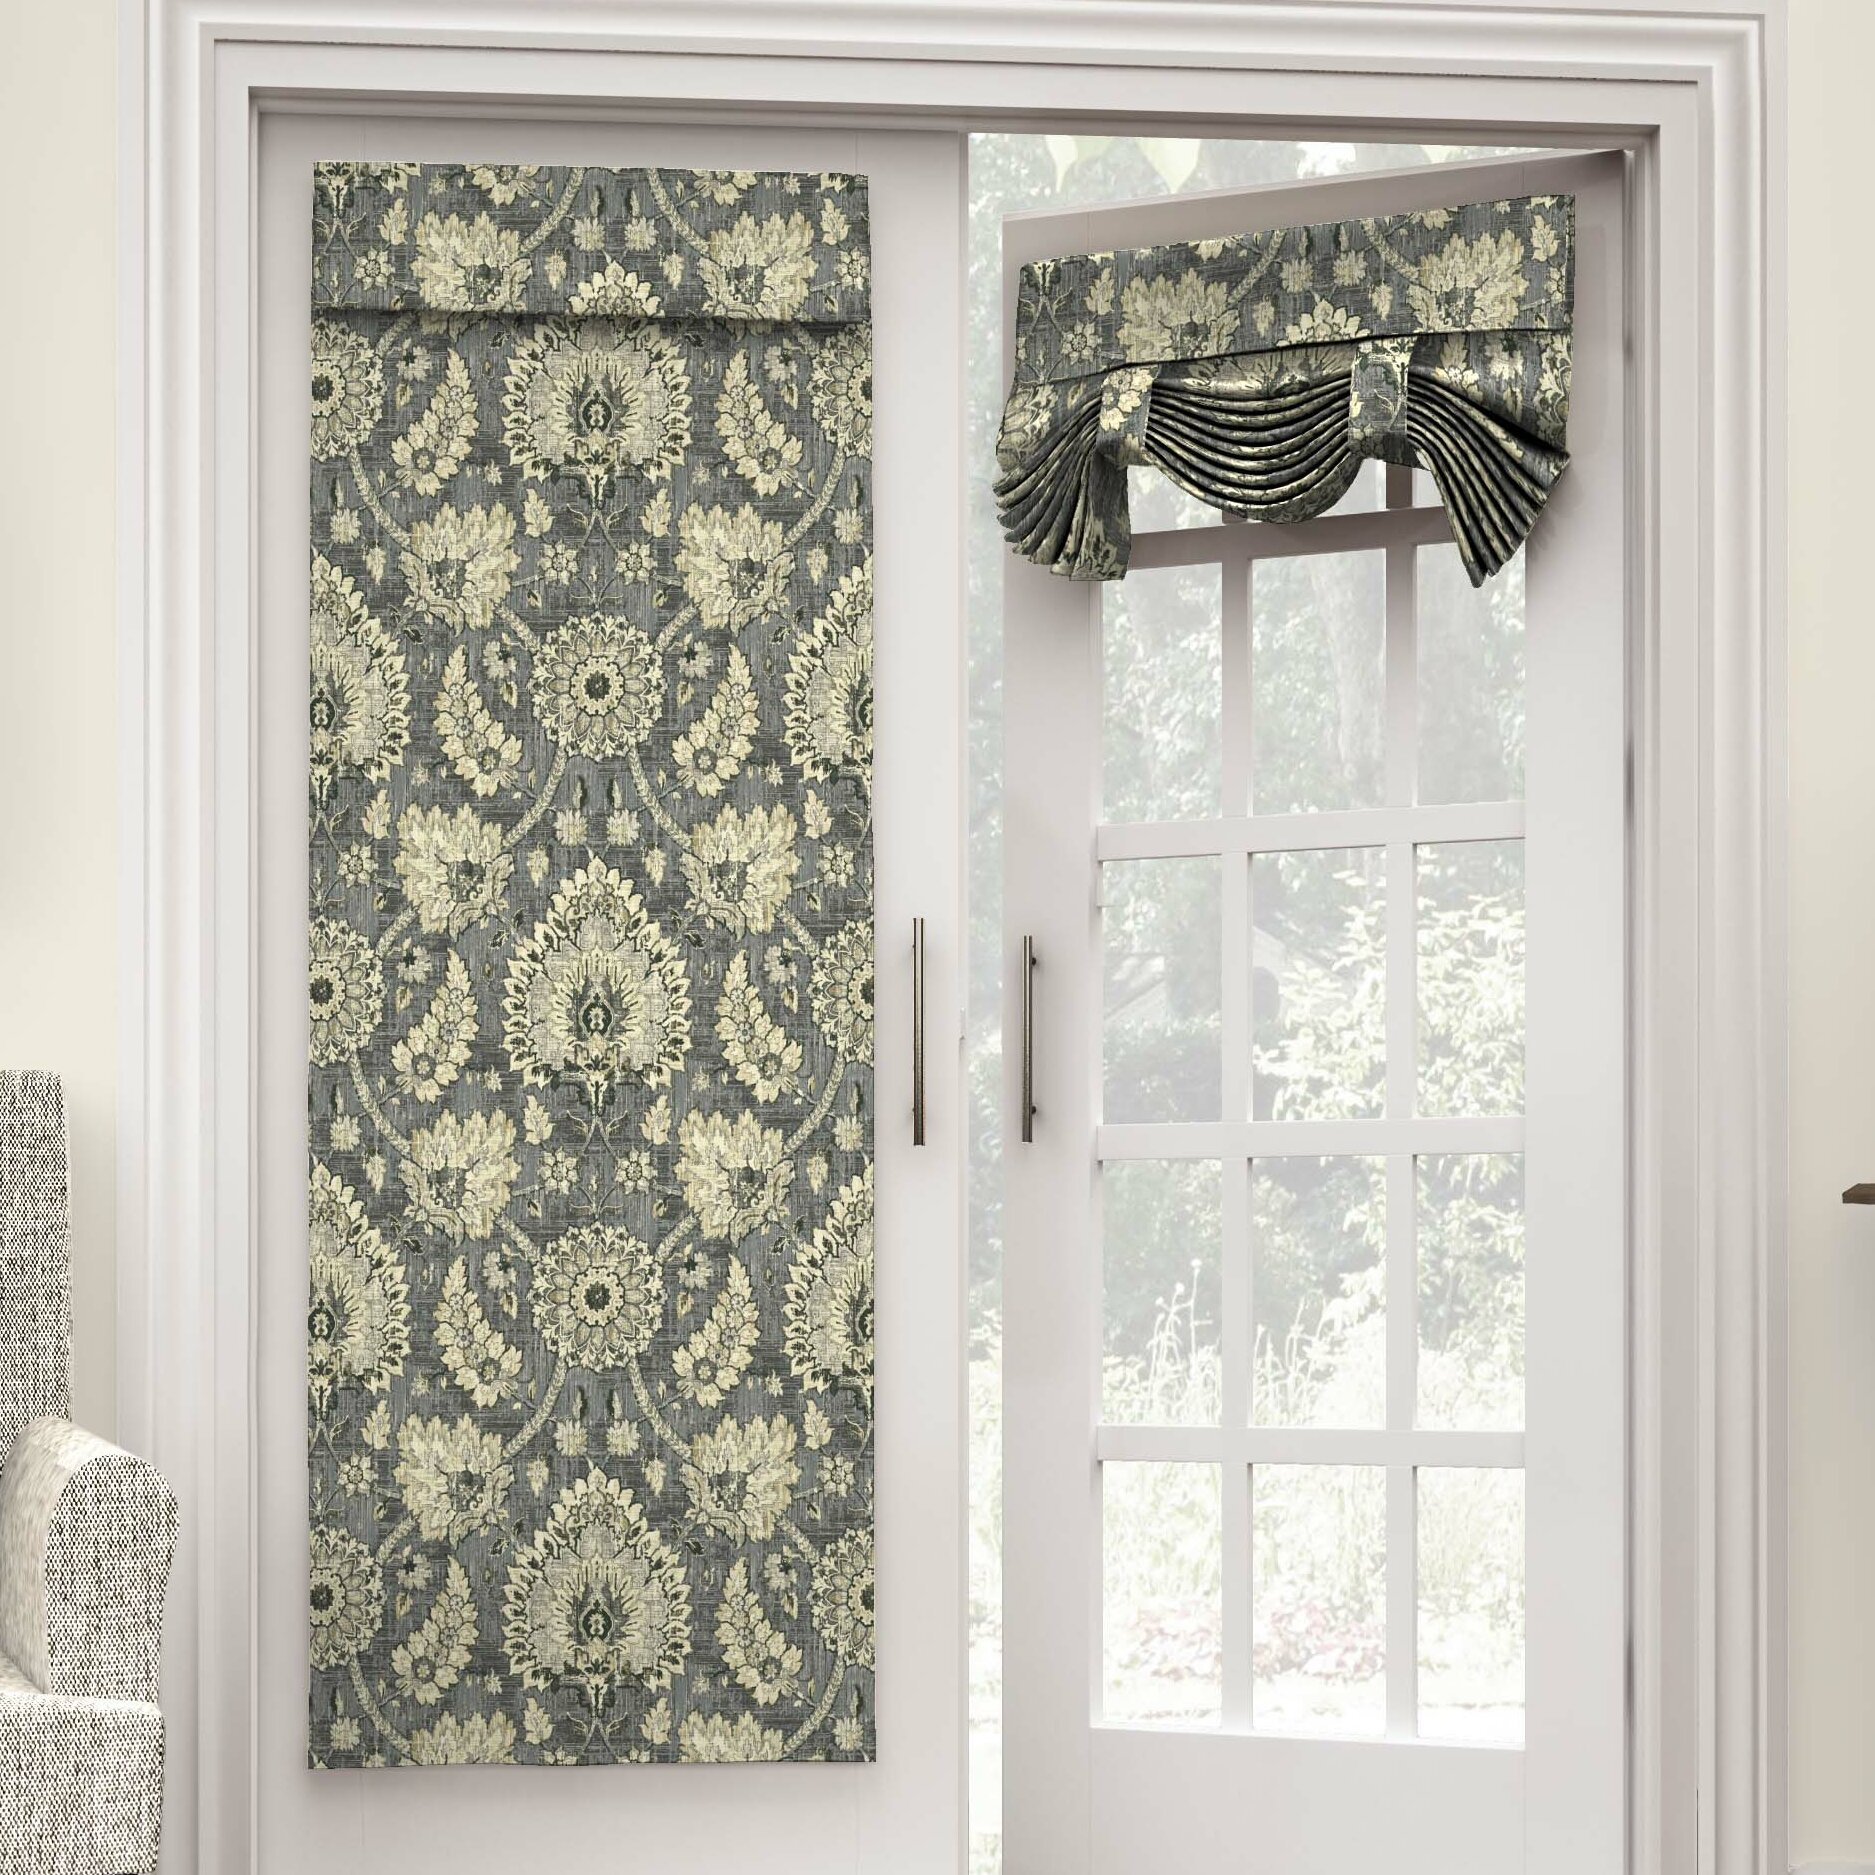 Panel Curtain French Door Curtains Sidelight Second sunco